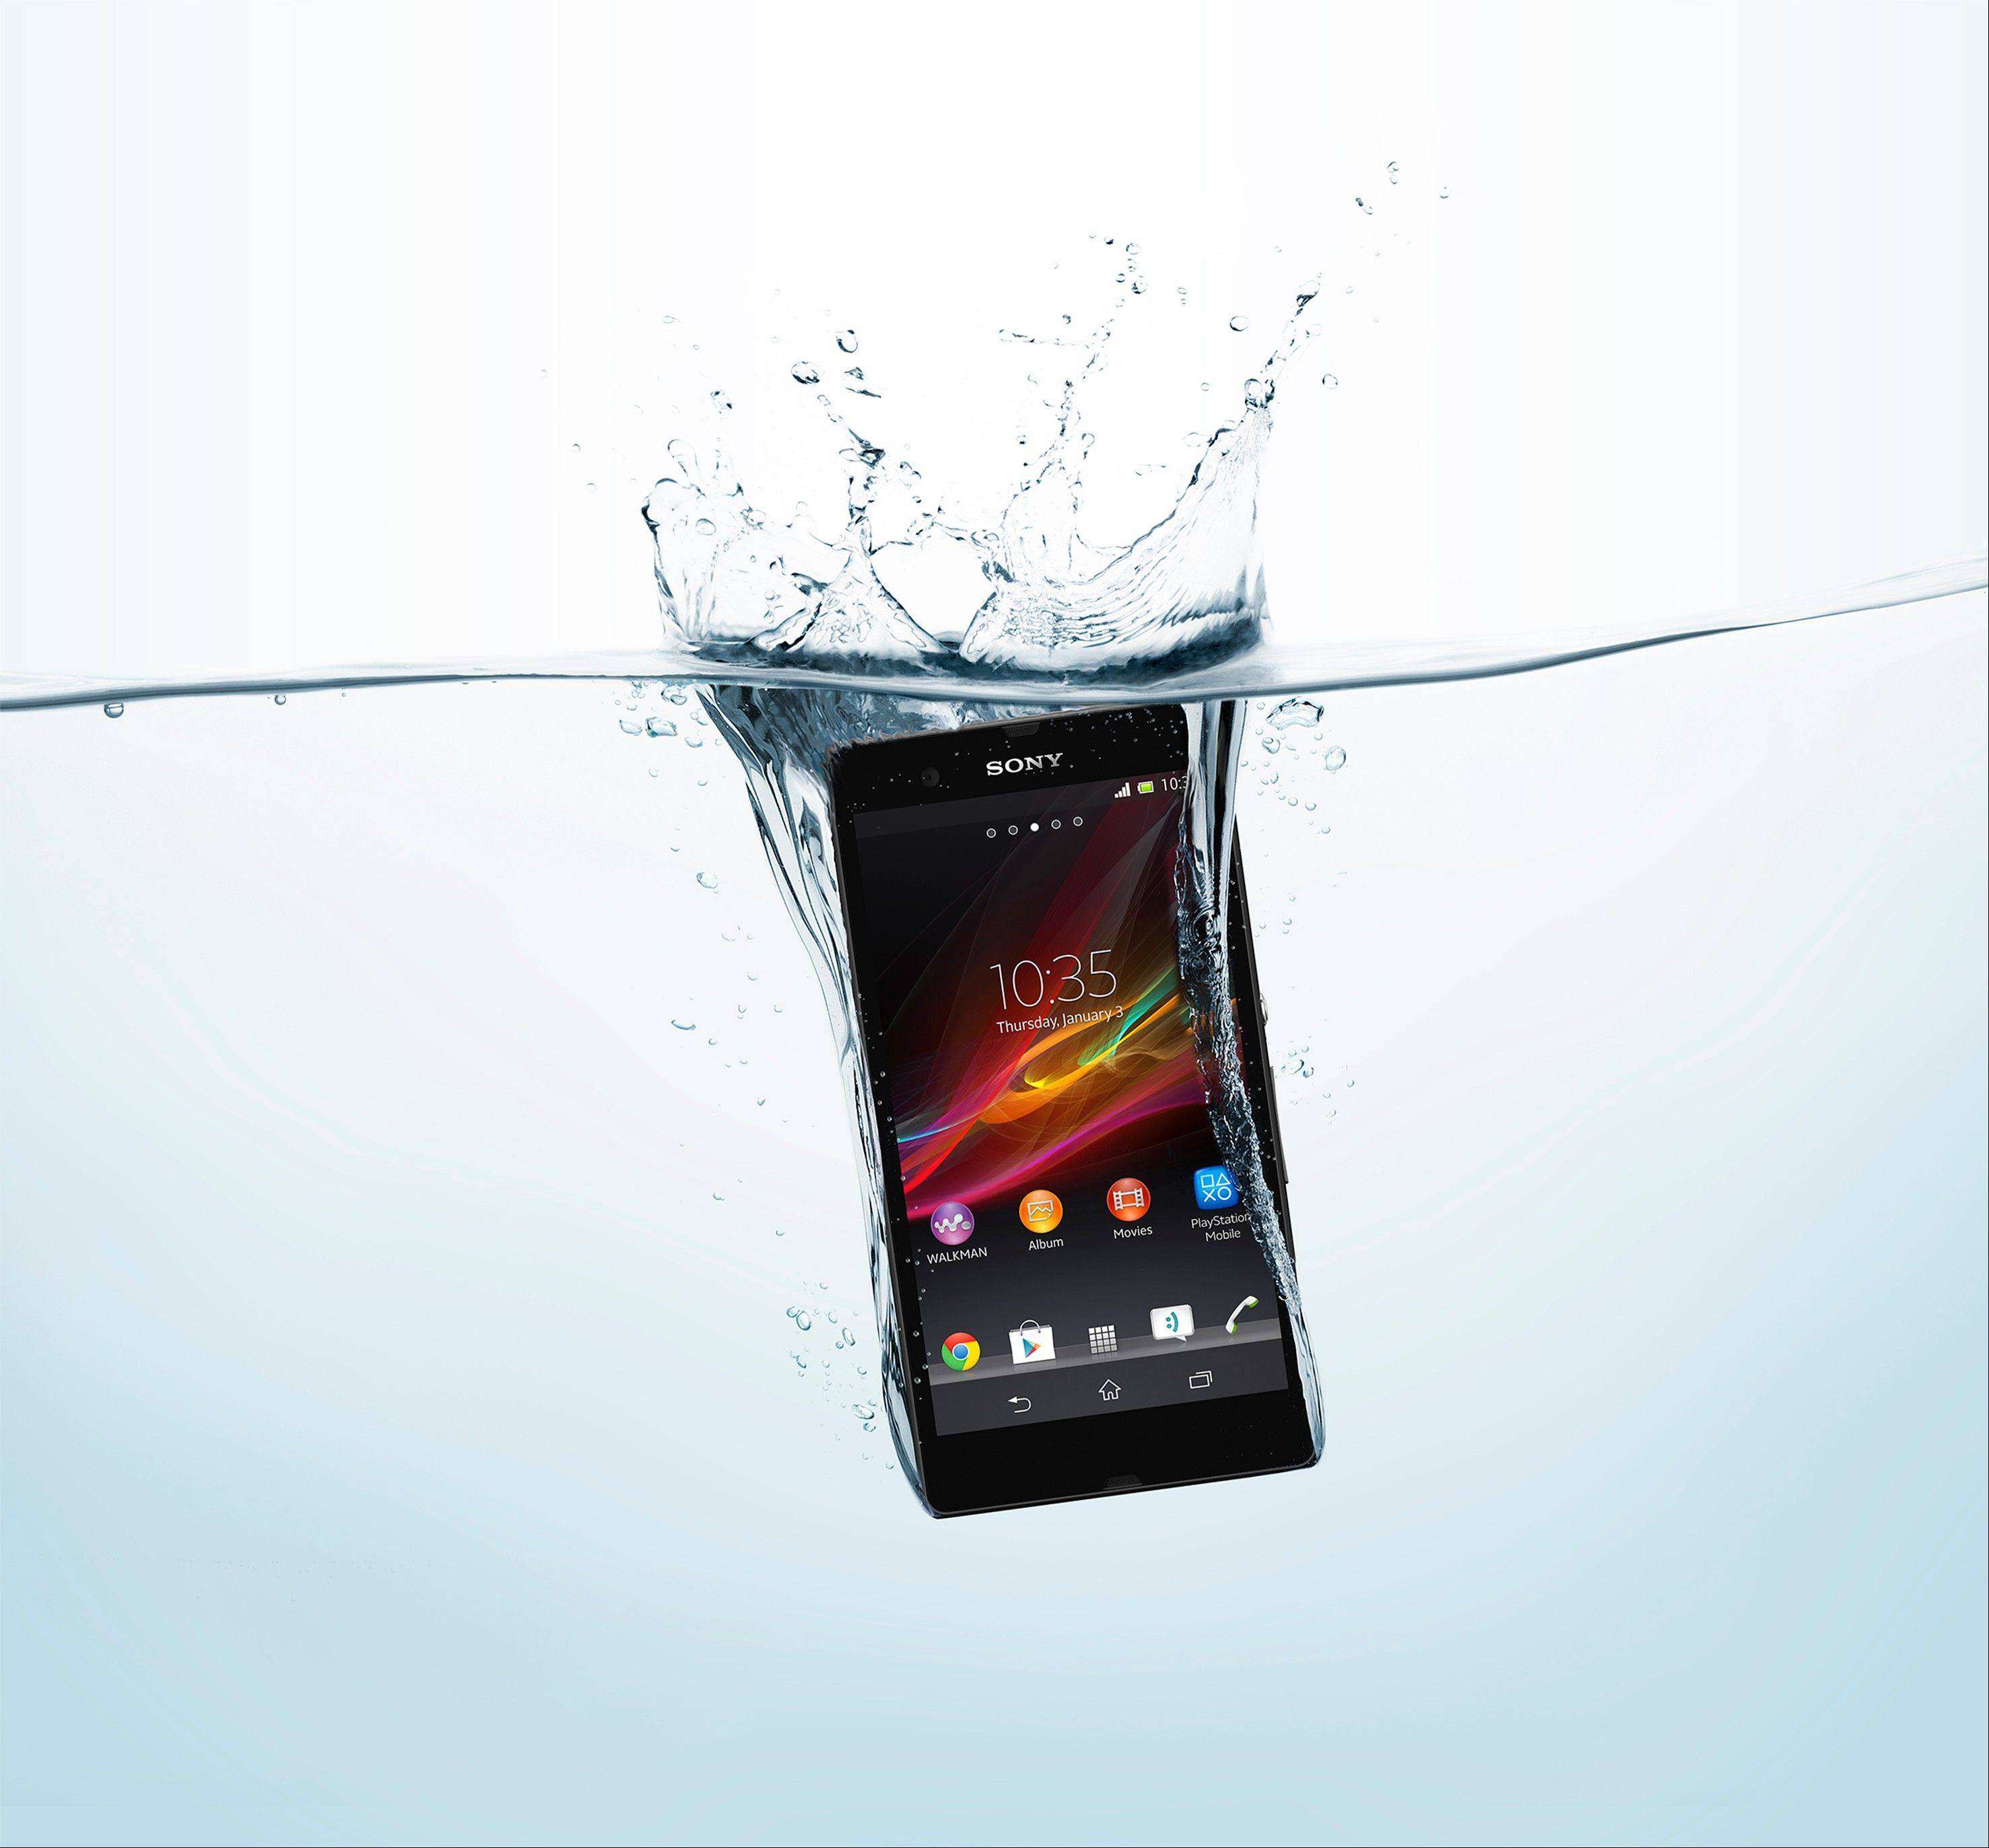 The Xperia Z, helps Sony catch up with offerings from Samsung and HTC, but one feature stands out; Its water-resistant shell means you can submerge the phone up to 3 feet deep for up to 30 minutes.